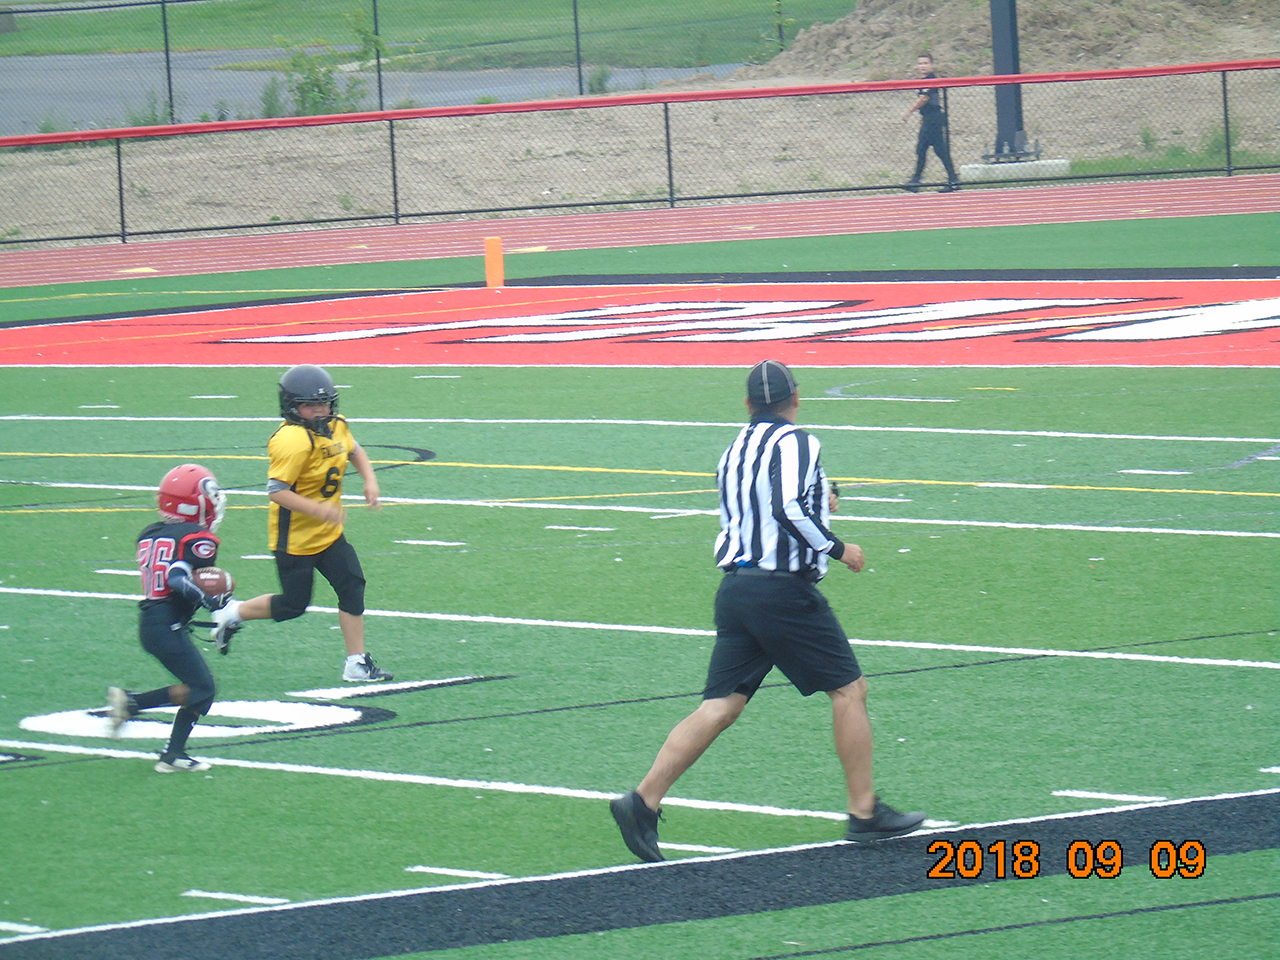 Youth Football in Ontario County (photo)